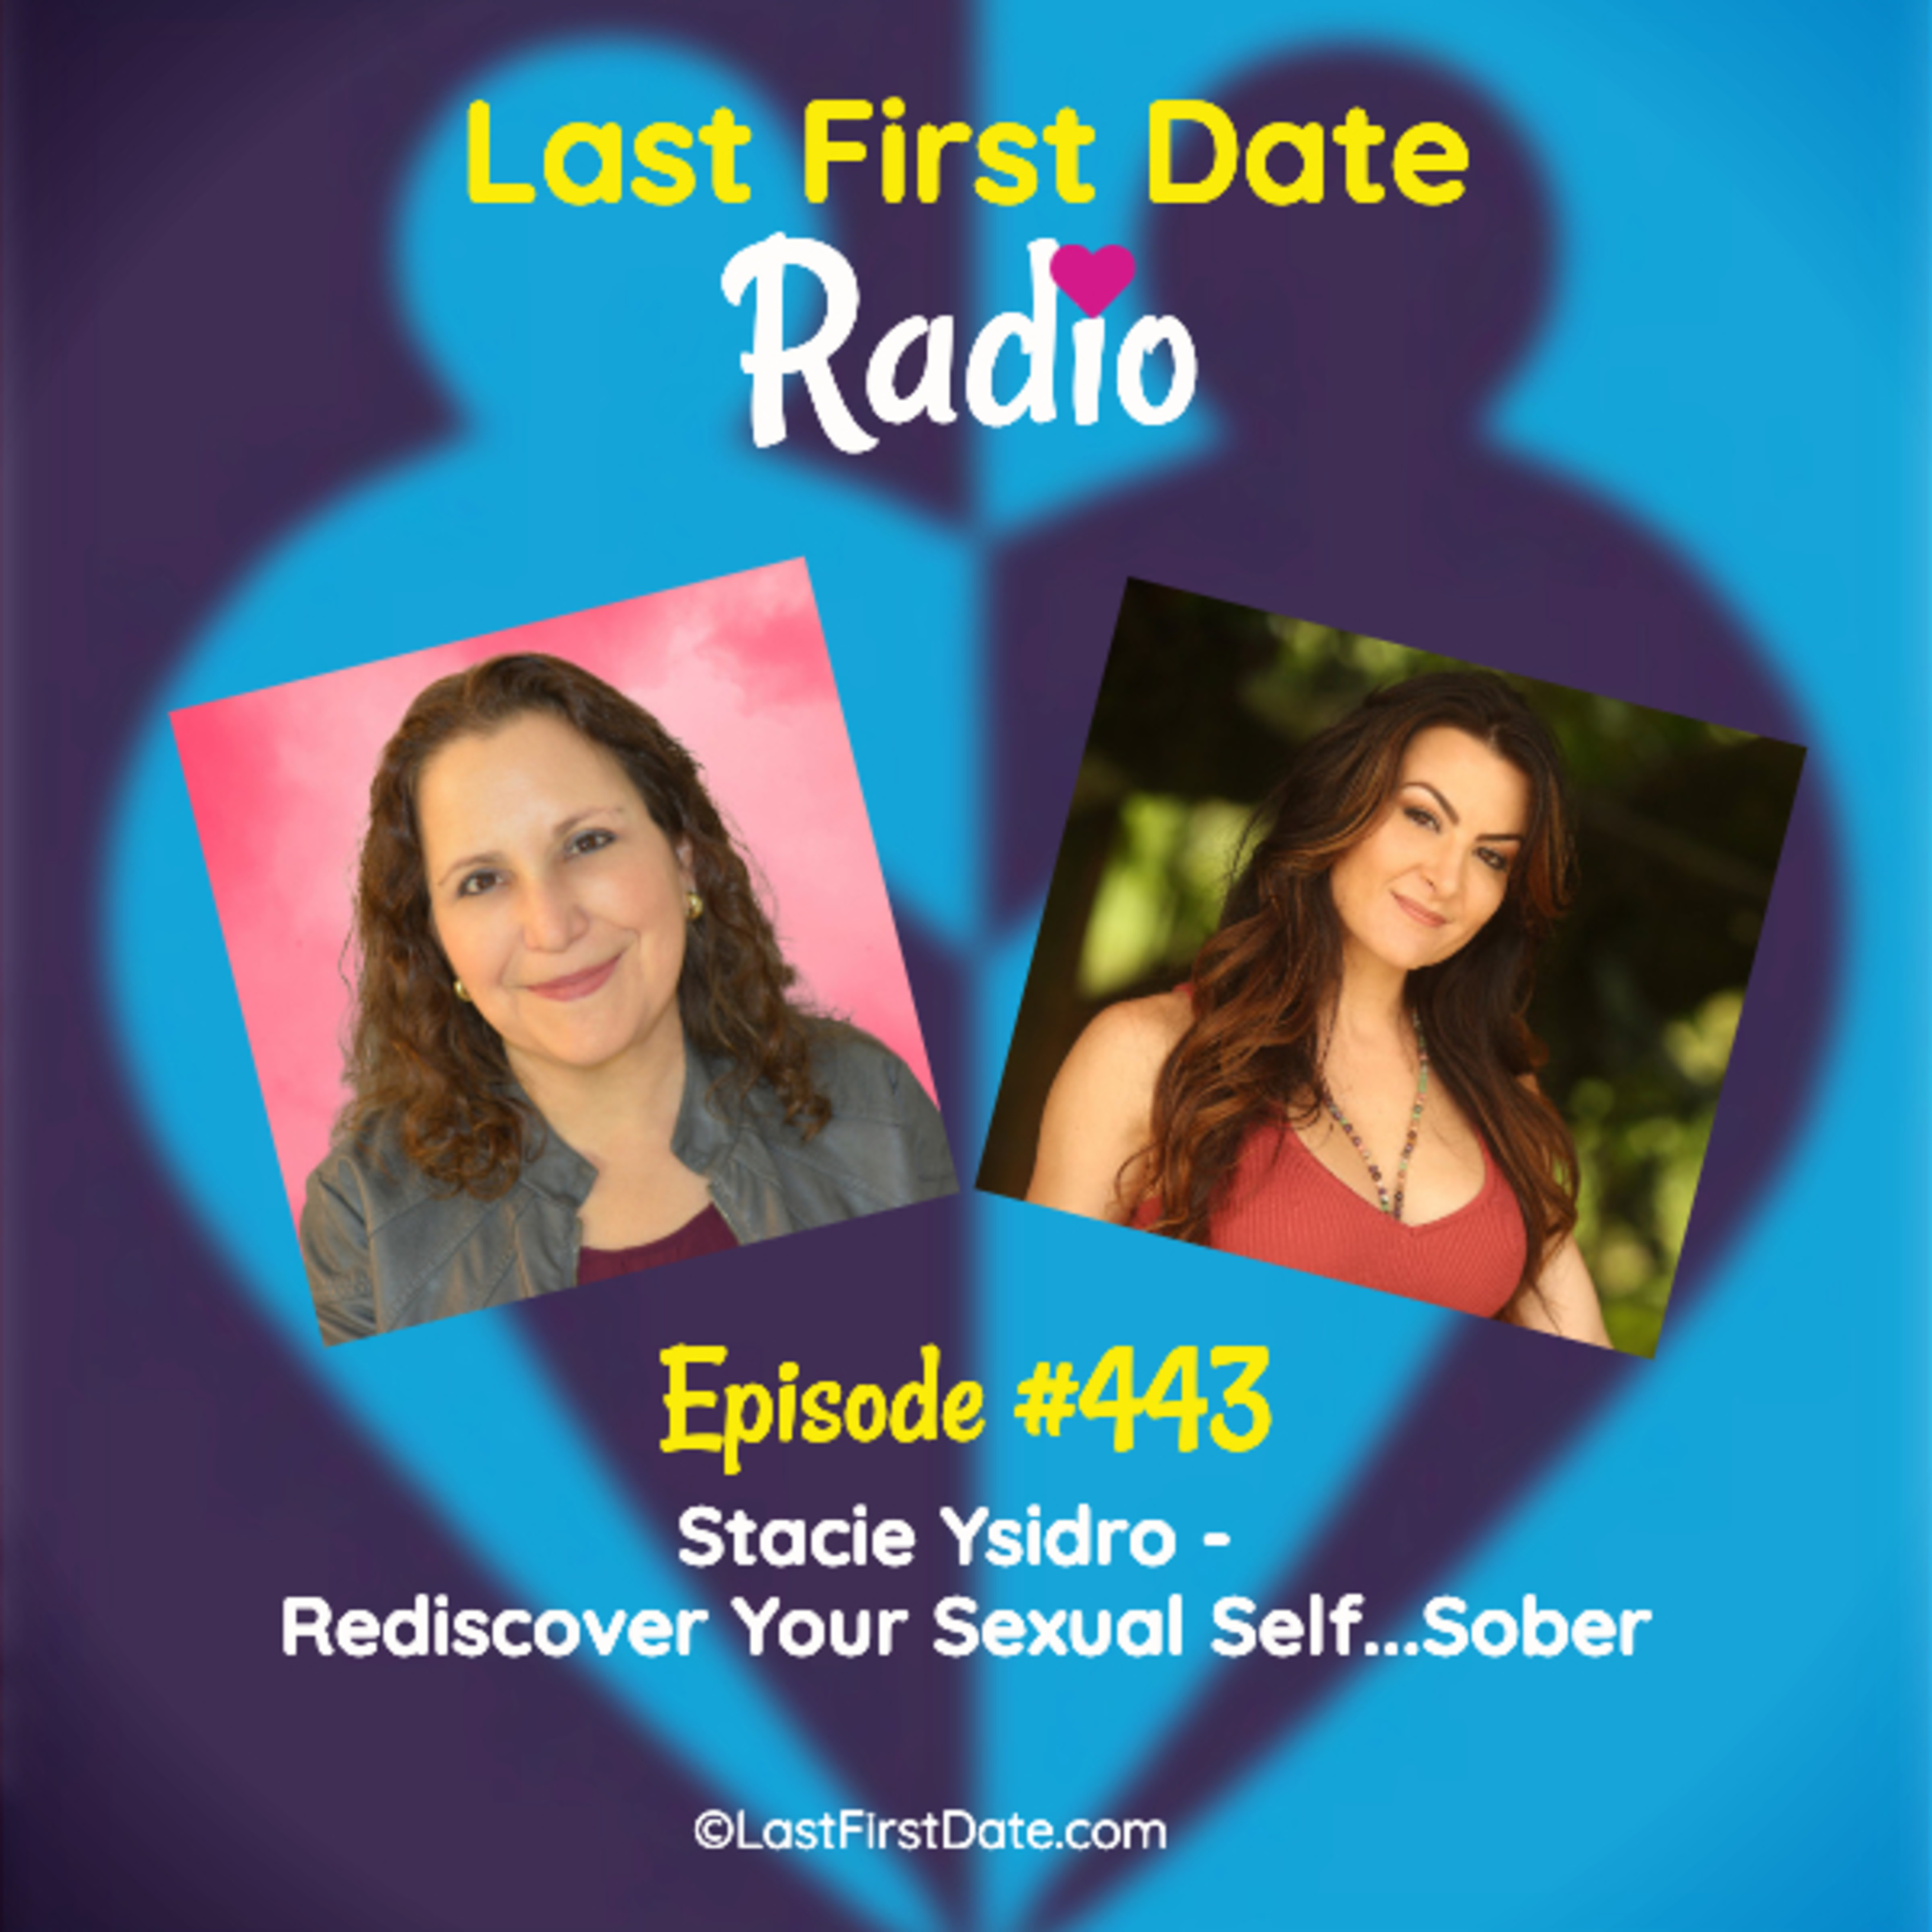 Last First Date Radio - EP 443: Stacie Ysidro - Rediscover Your Sexual Self...Sober